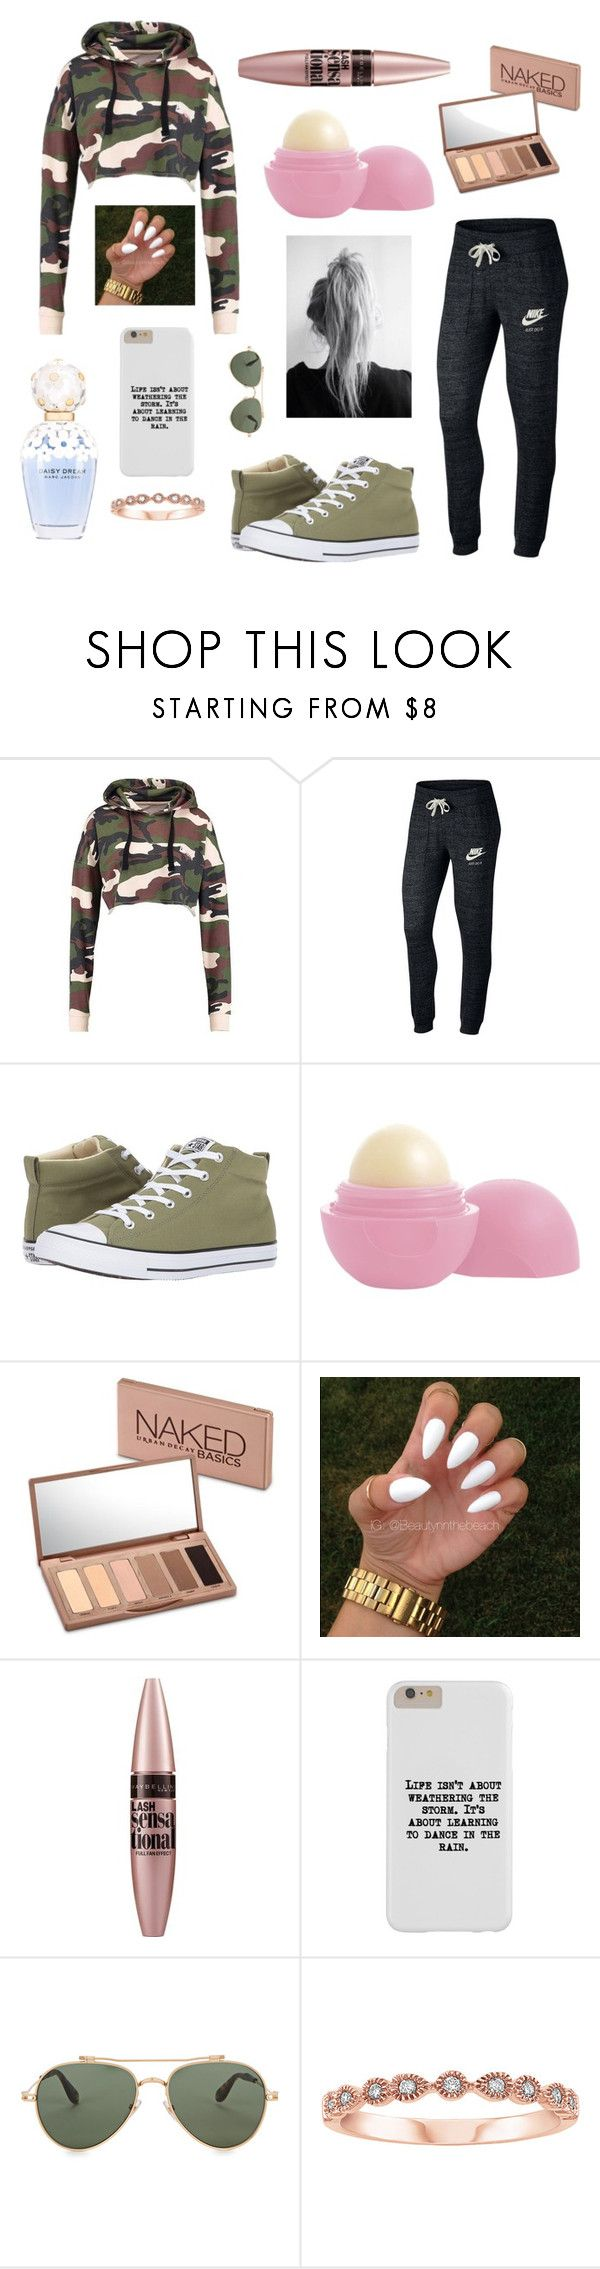 """""""Cute day out"""" by designerdream49 ❤ liked on Polyvore featuring NIKE, Converse, Eos, Urban Decay, Maybelline, Marc Jacobs and Givenchy"""